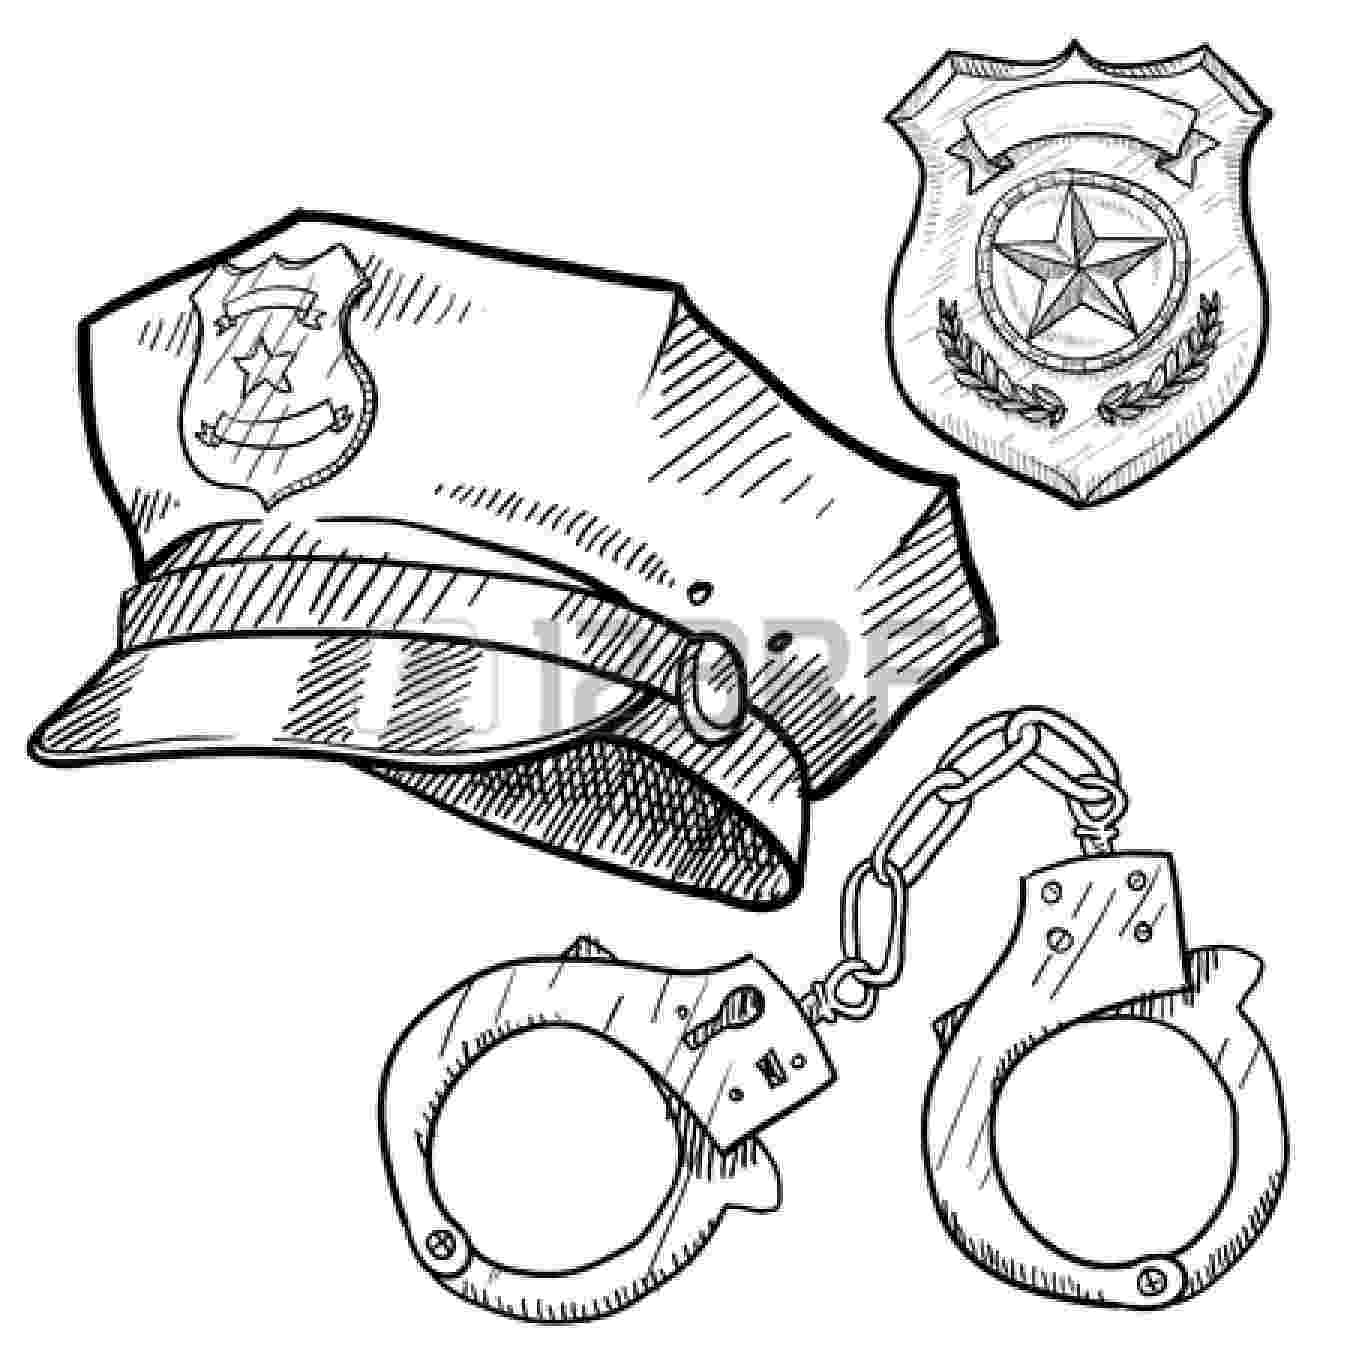 police officer badge coloring page police officer coloring pages clipart panda free badge officer police page coloring